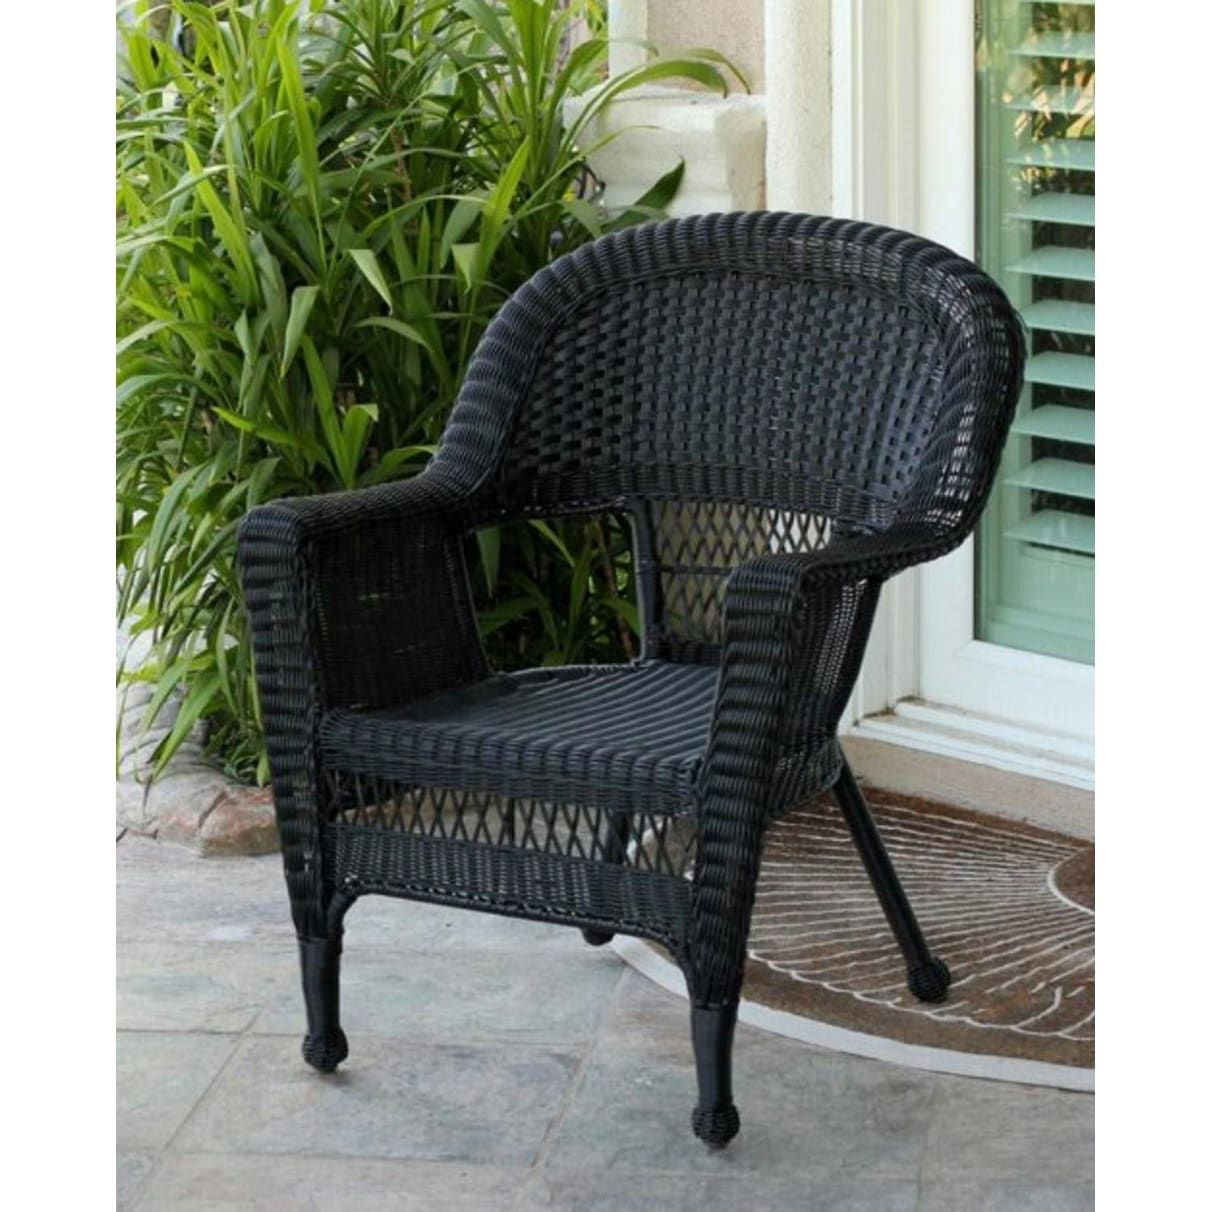 Set Of 2 Black Resin Wicker Weather Resistant Outdoor Patio Garden Chairs 36 Orange Cushions Garden Chairs Green Cushions